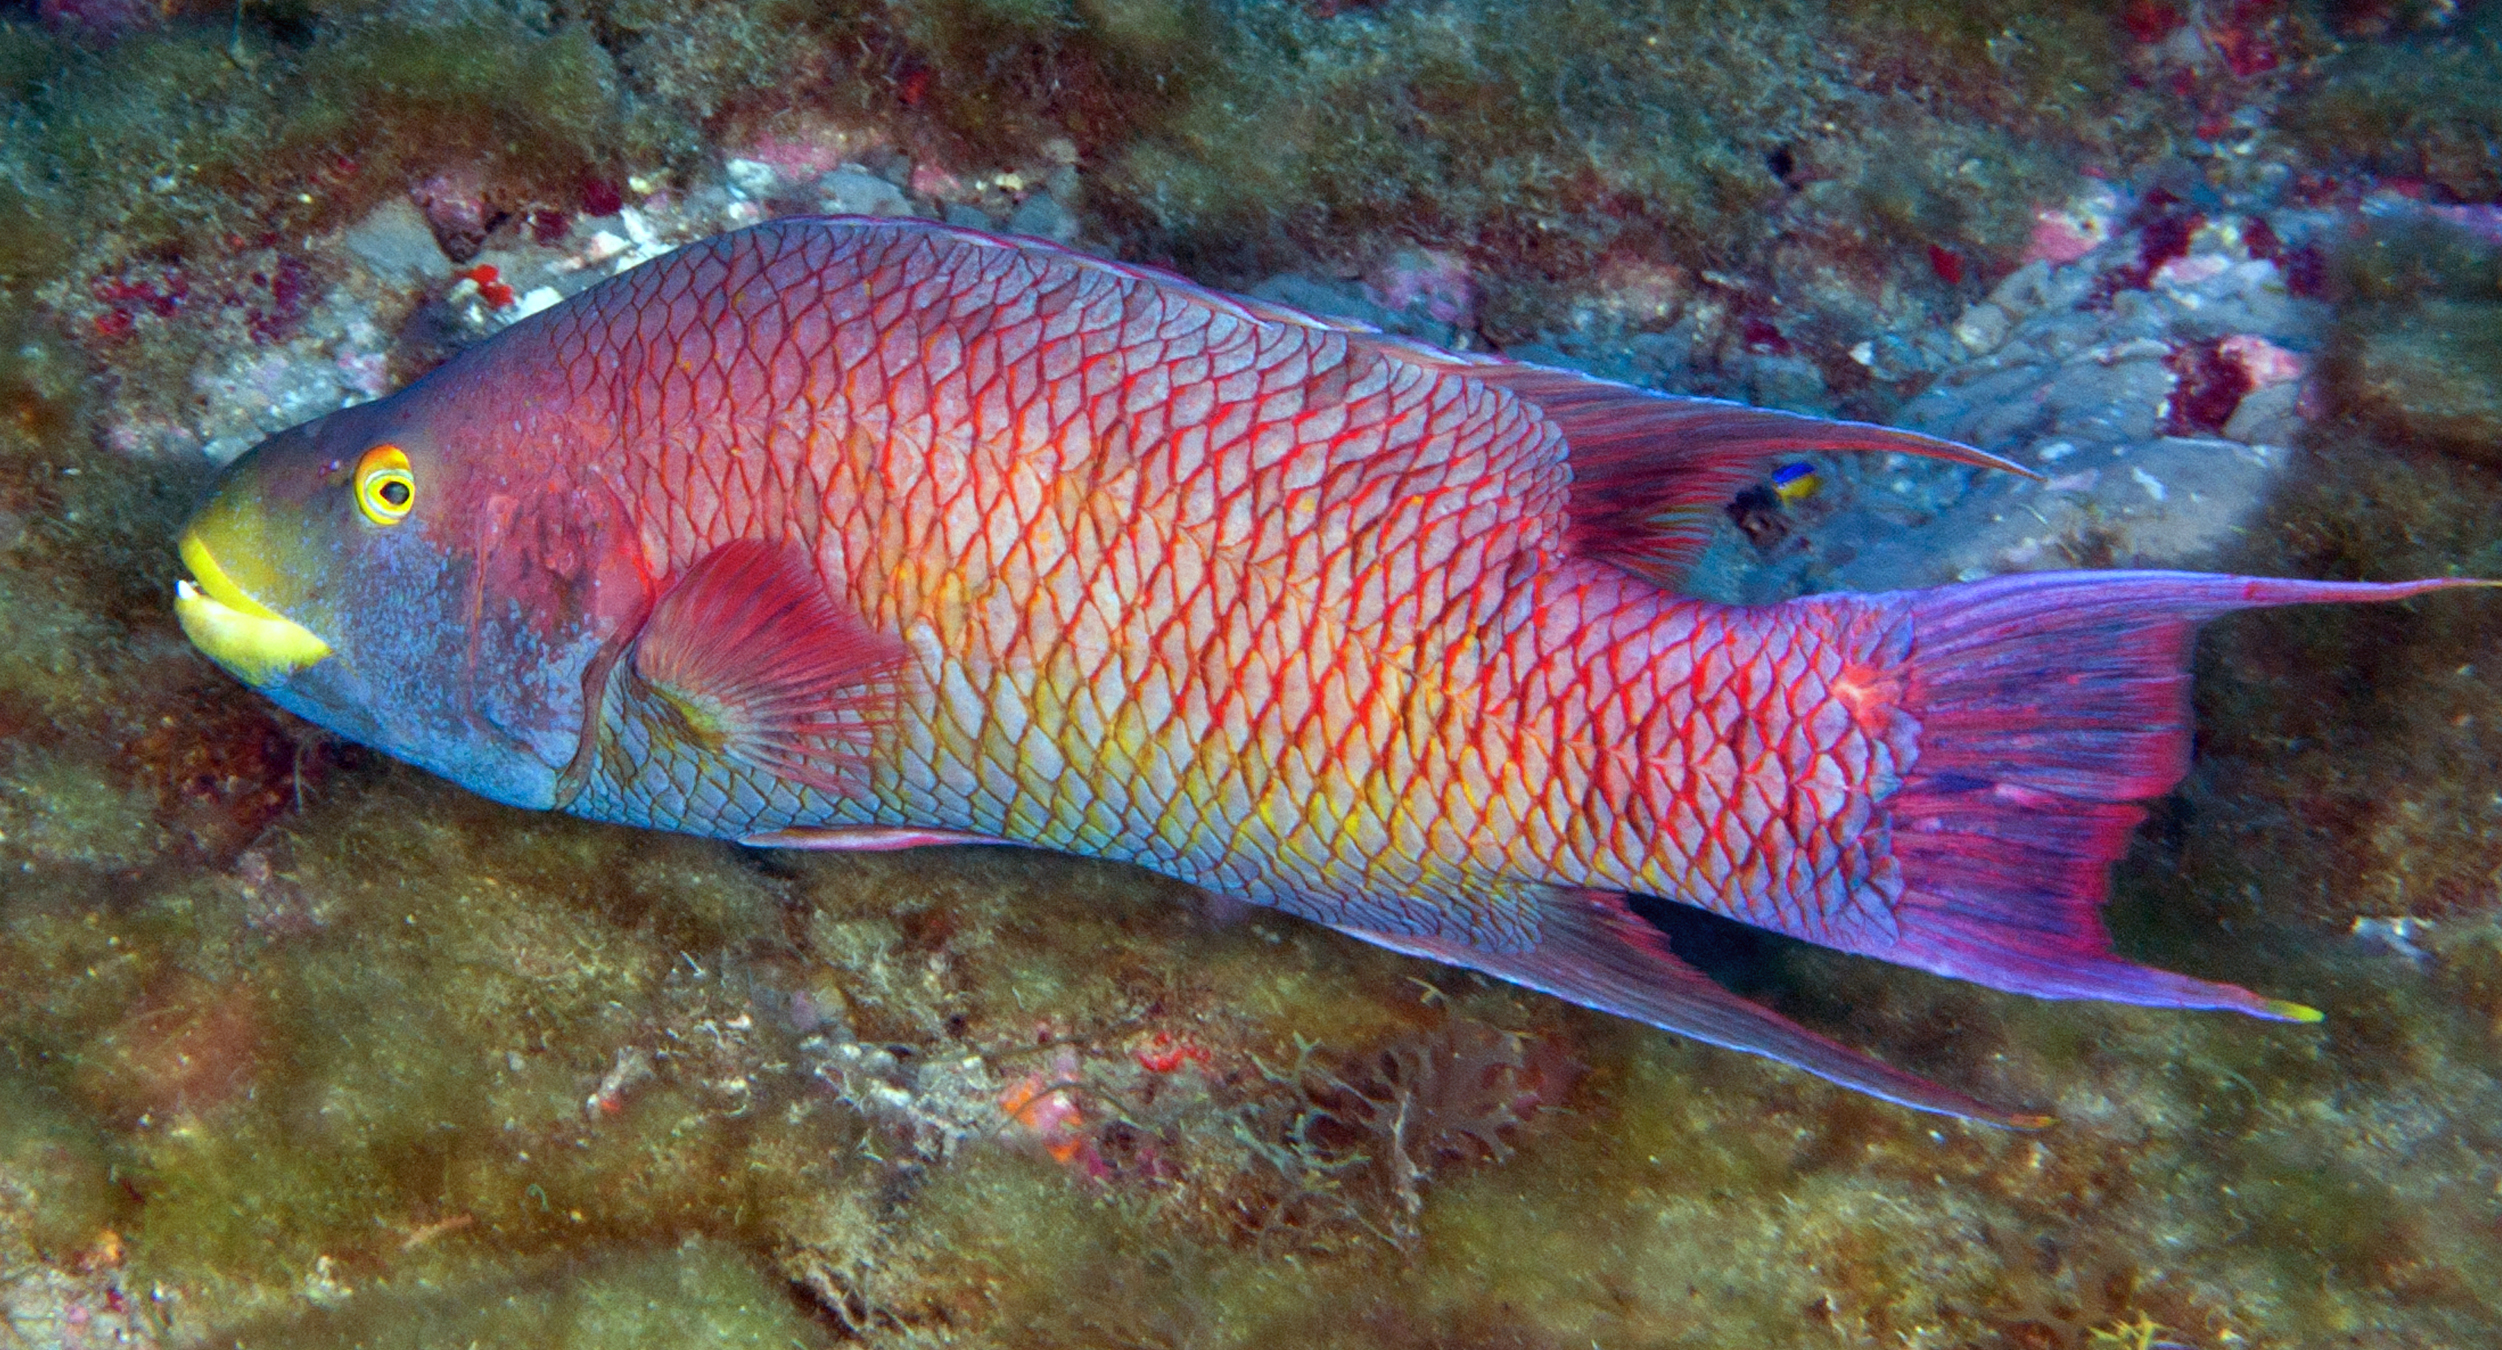 Fishes of flower garden banks national marine sanctuary for Fish in spanish